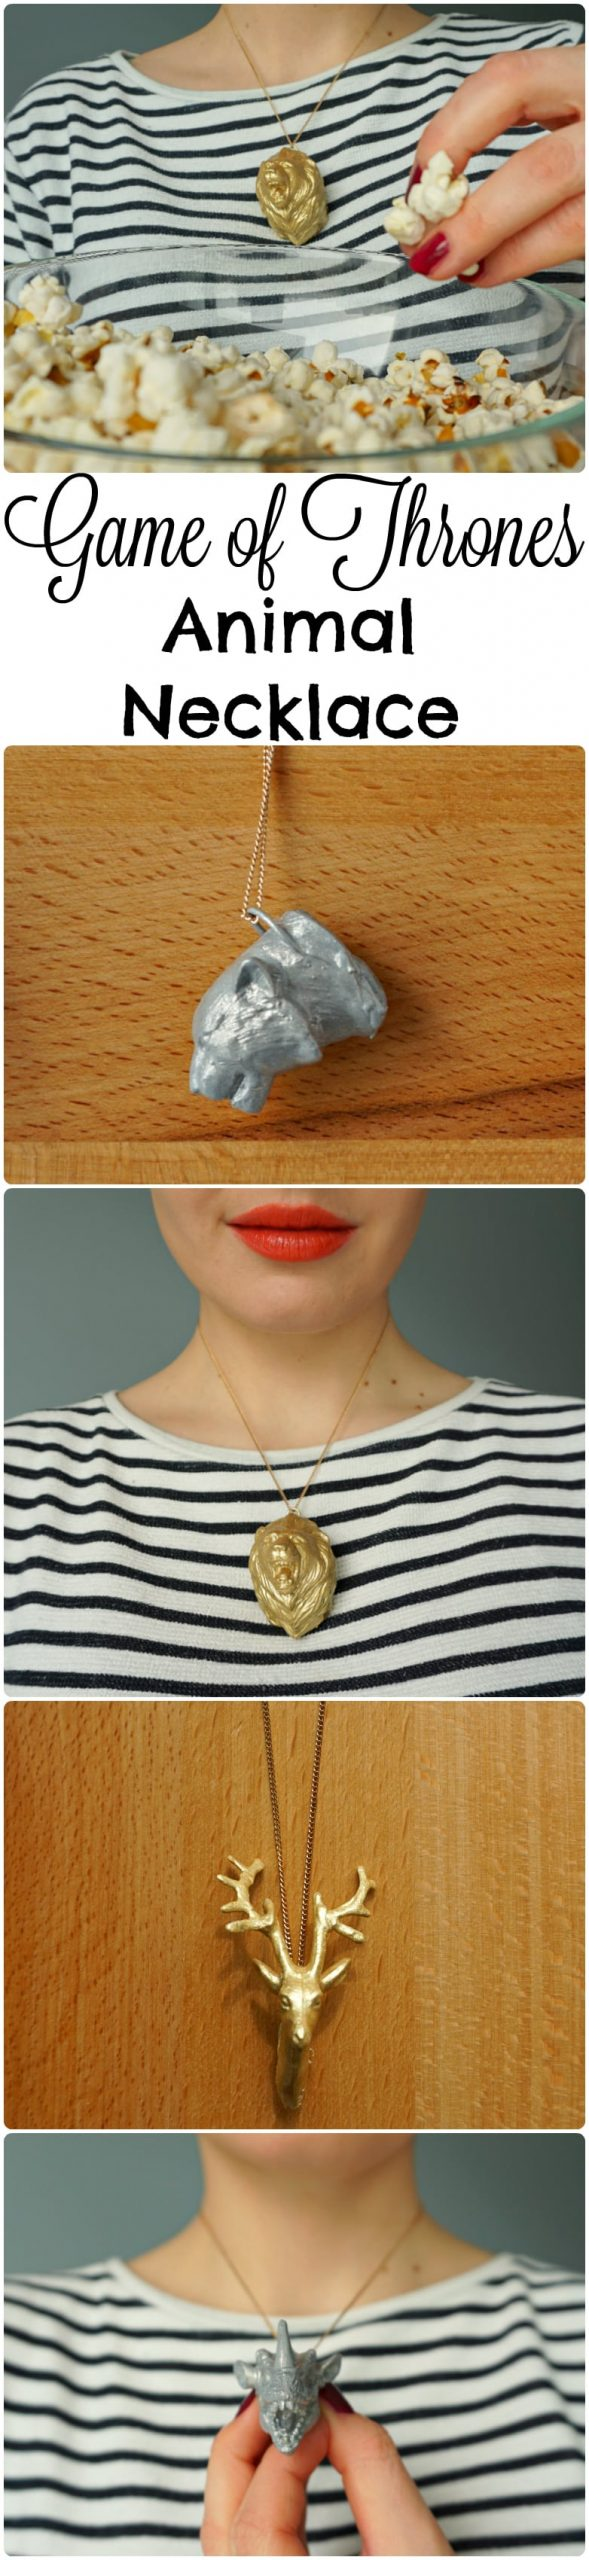 Game of Thrones DIY How to make a direwolf, stag, lion and dragon Animal Necklace Tutorial by The Makeup Dummy